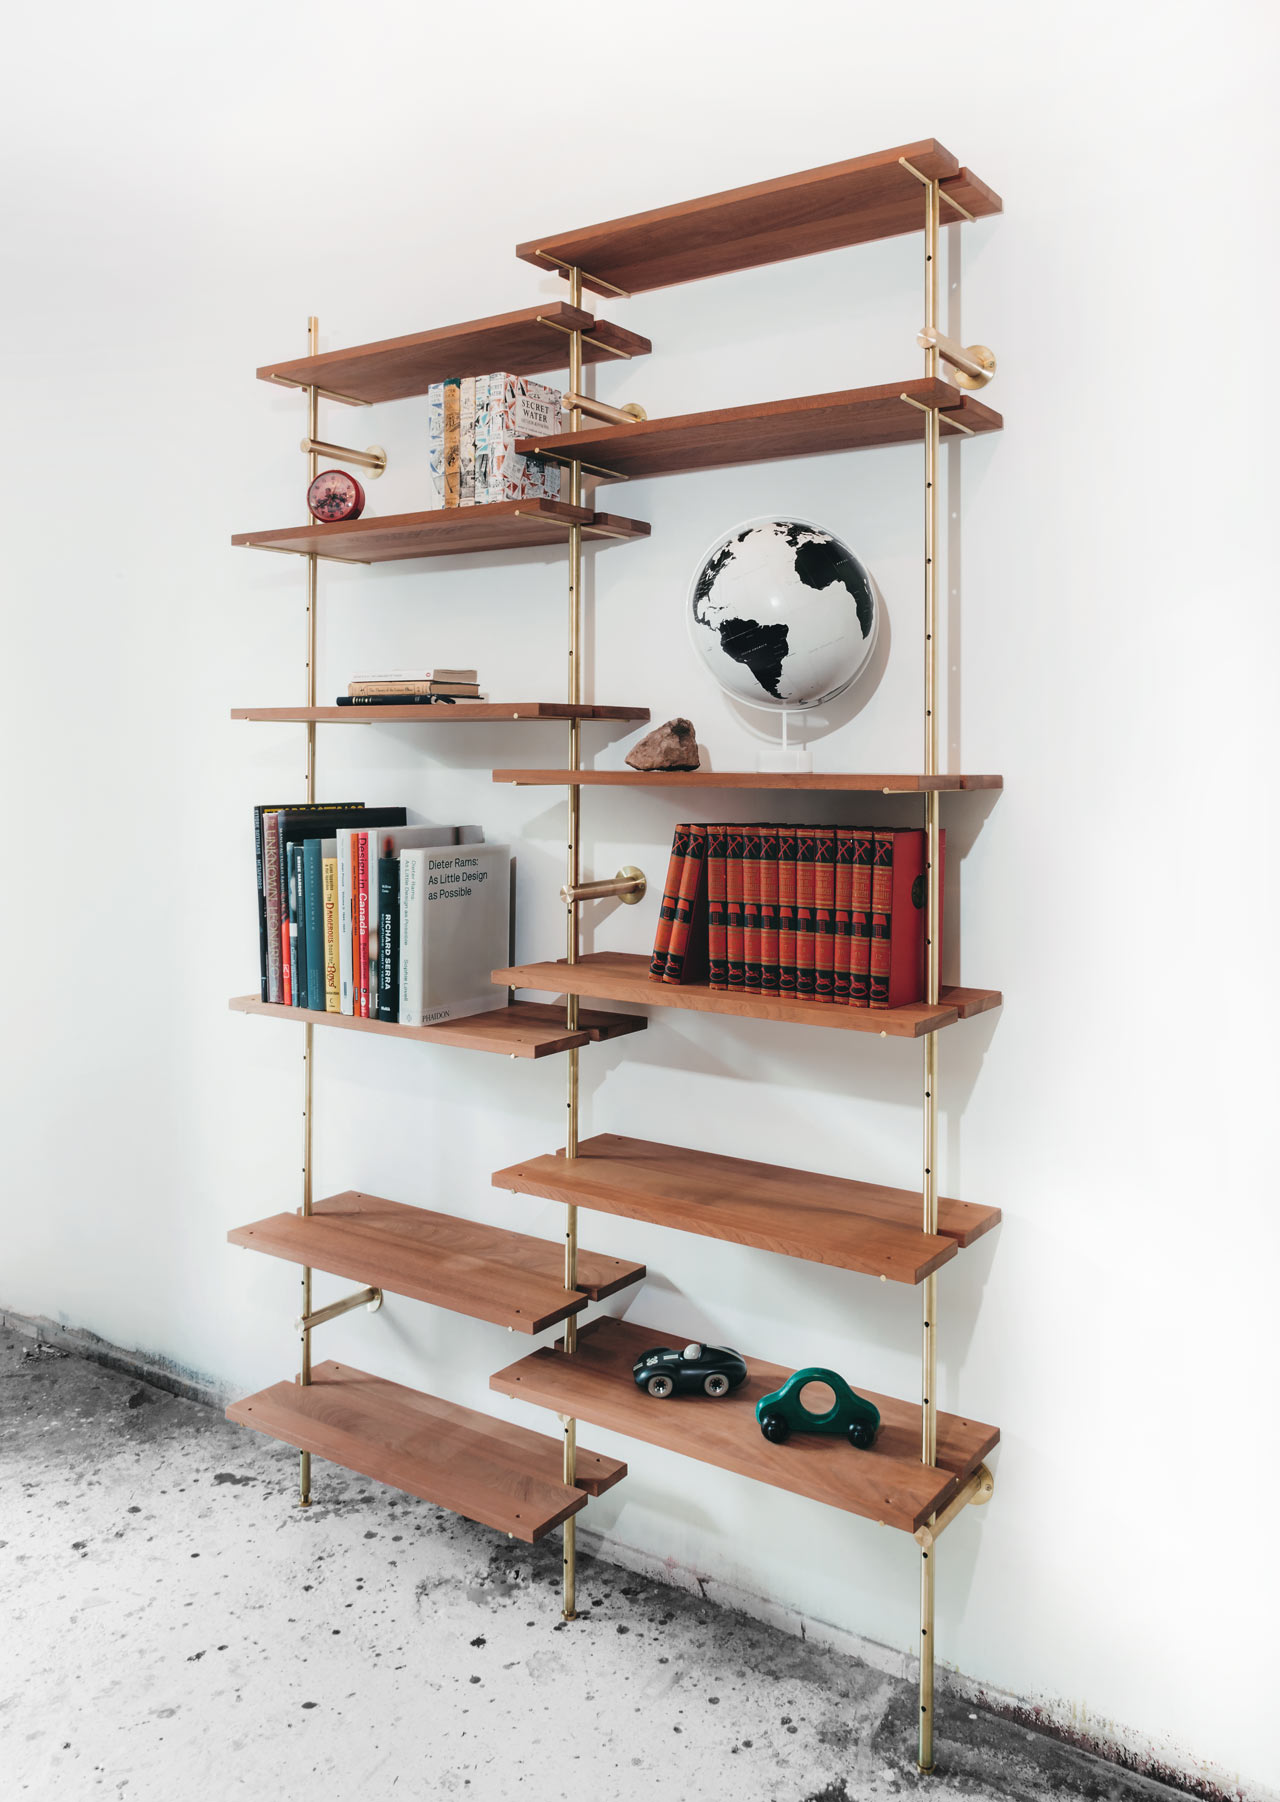 Brass Rail Shelving by Ryan Taylor for Object/Interface